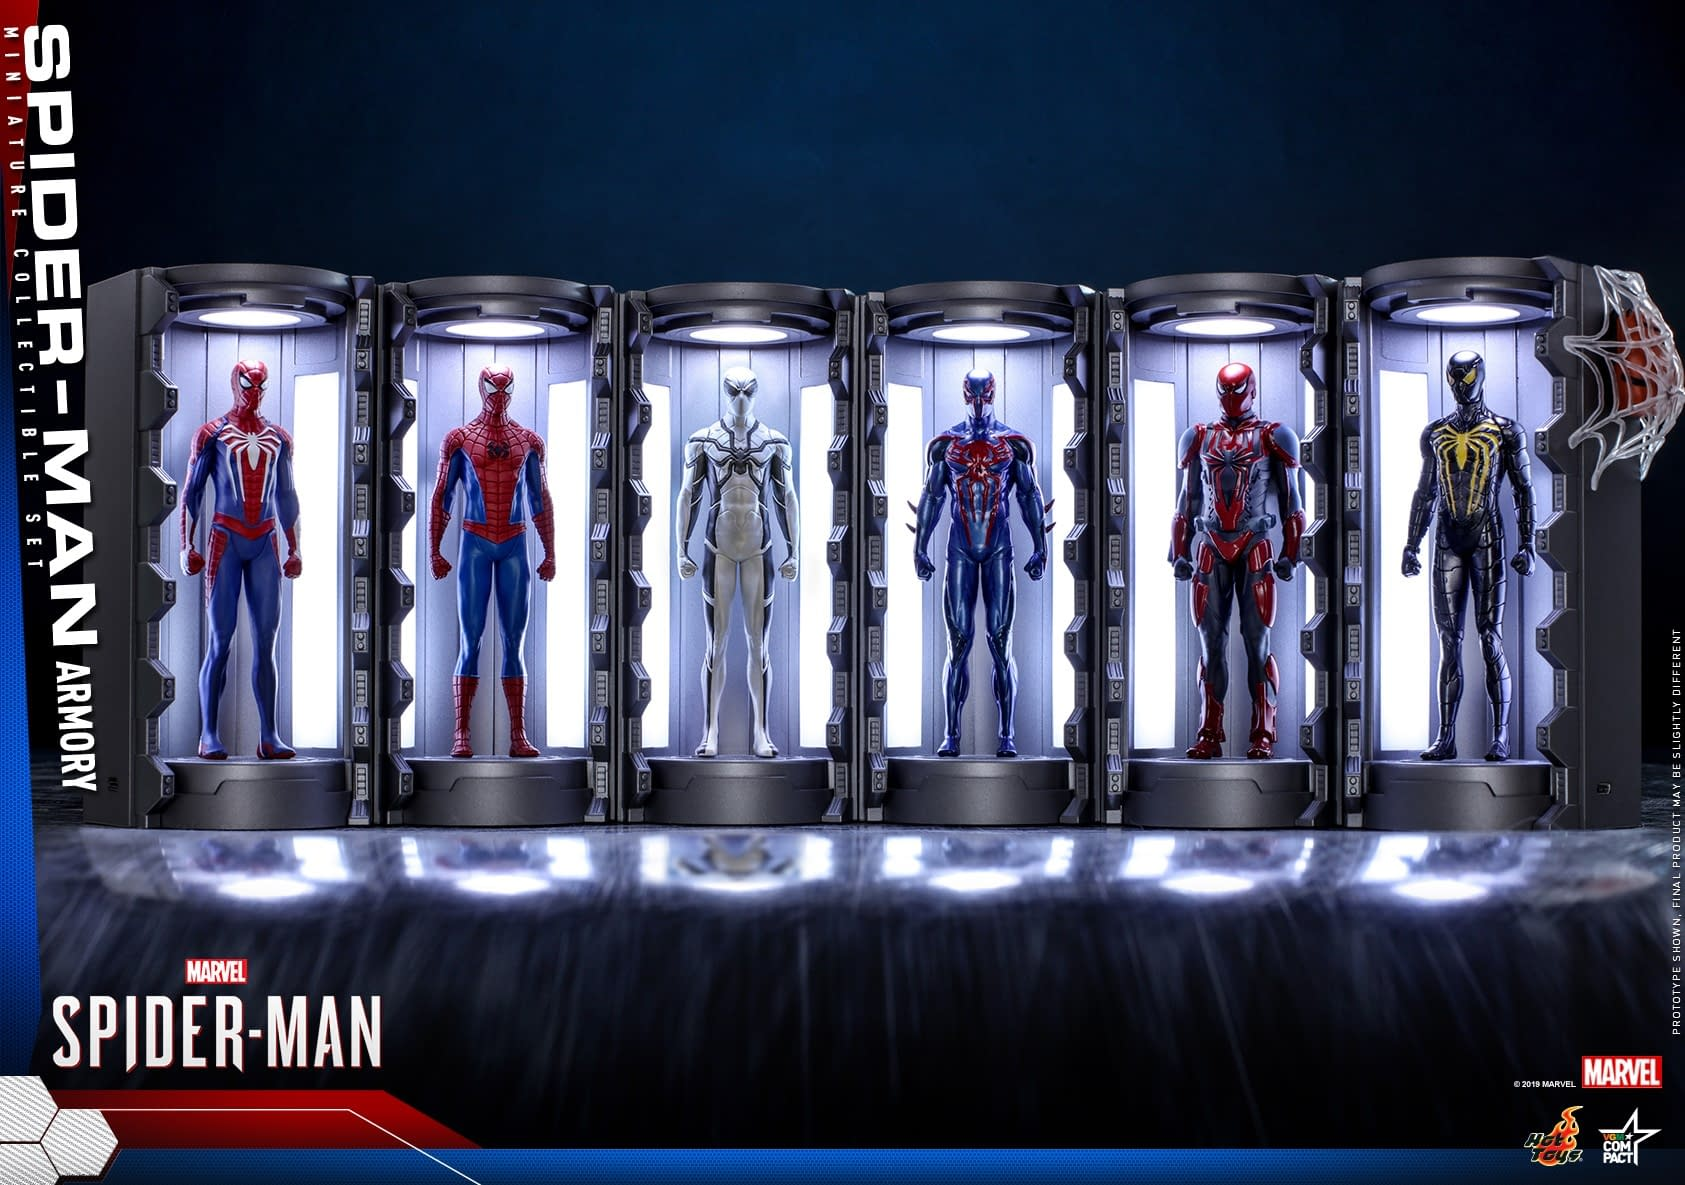 Spider-Man Gets His Own Armory Display with Hot Toys